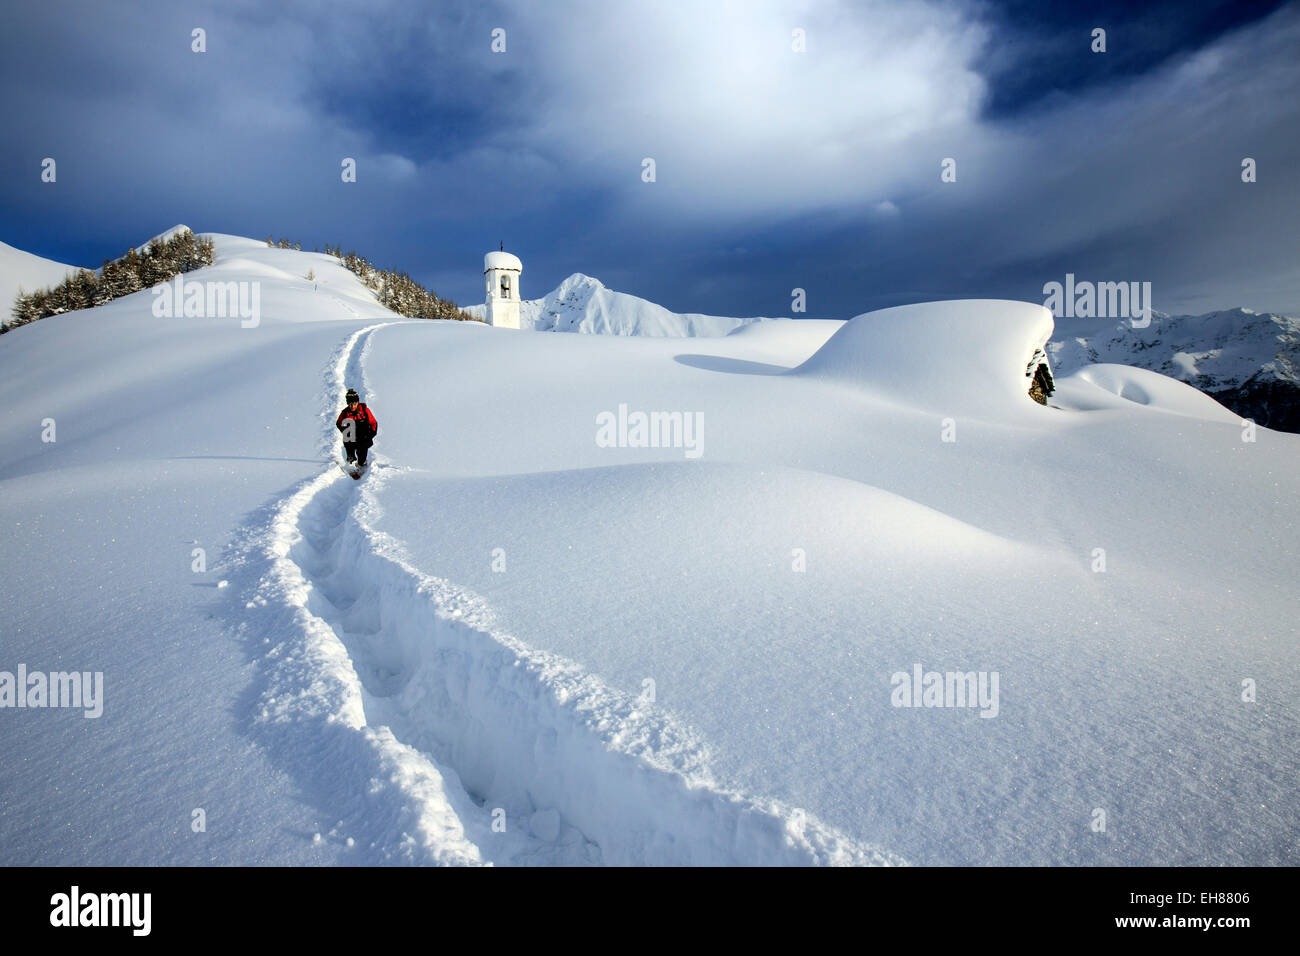 A solitary hiker leaving the little village at the Scima Alp covered in snow, Valchiavenna, Lombardy, Italy, Europe - Stock Image